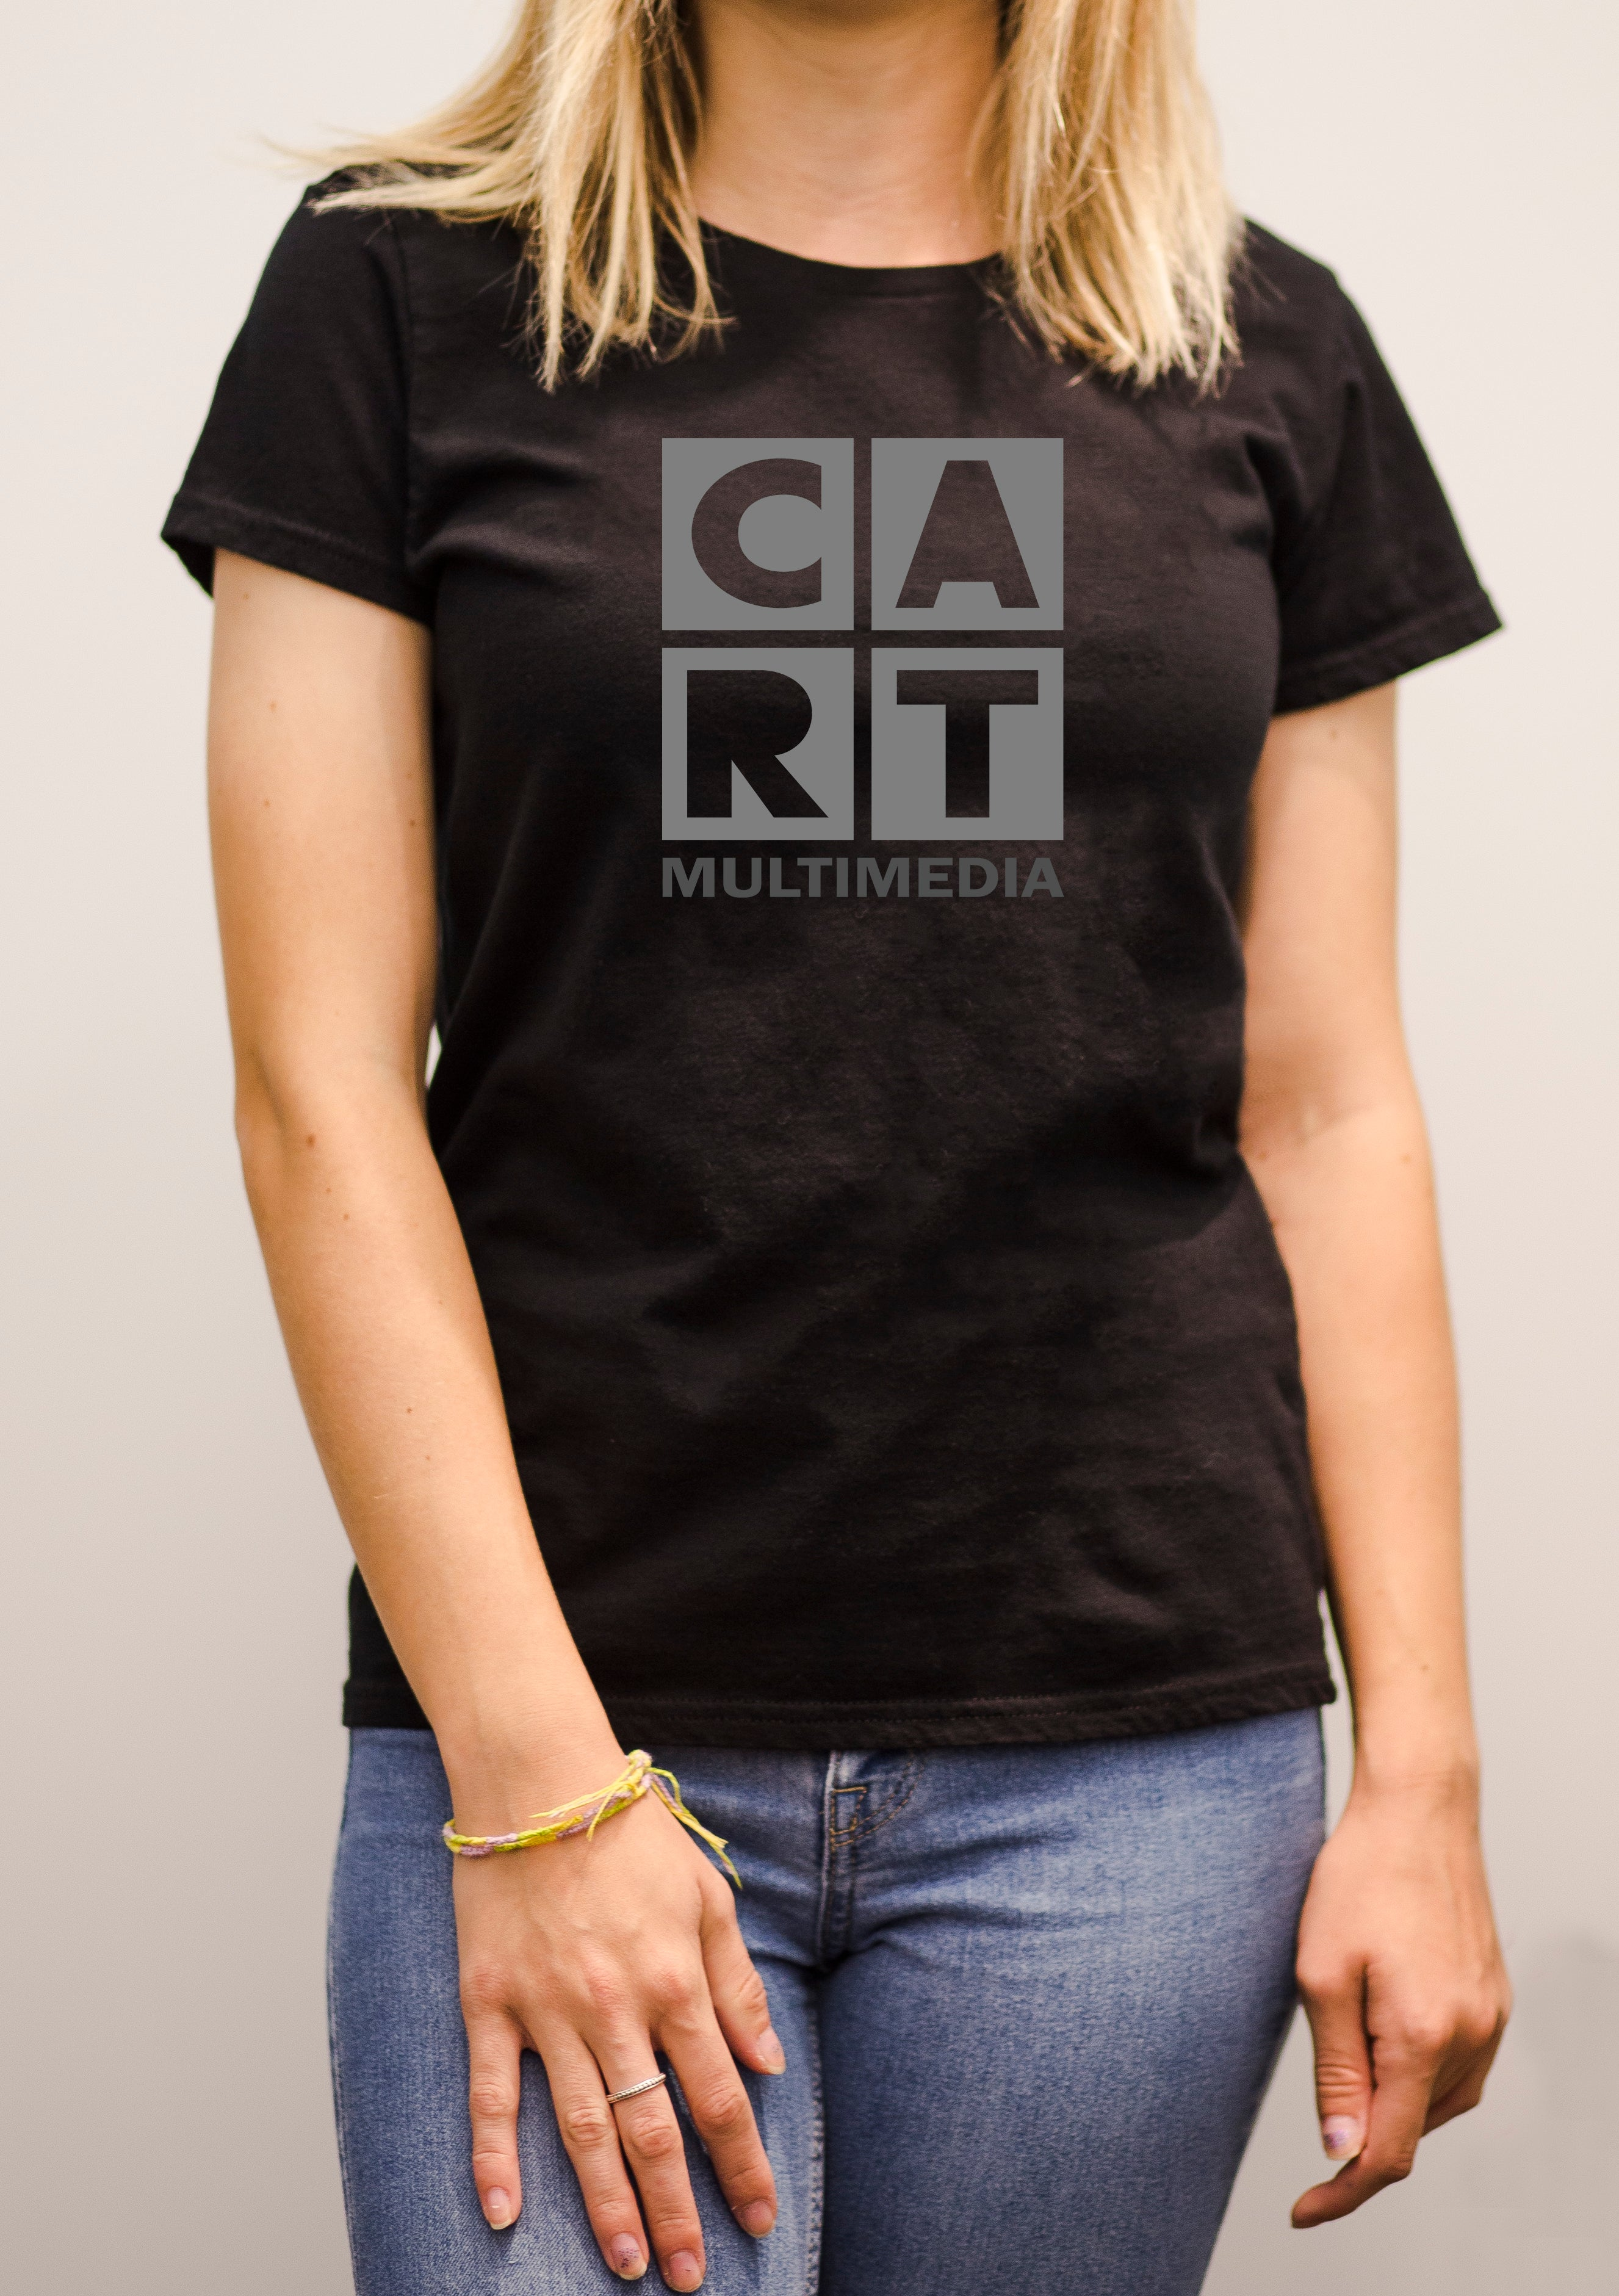 Women's short sleeve t-shirt - Multimedia black/grey logo